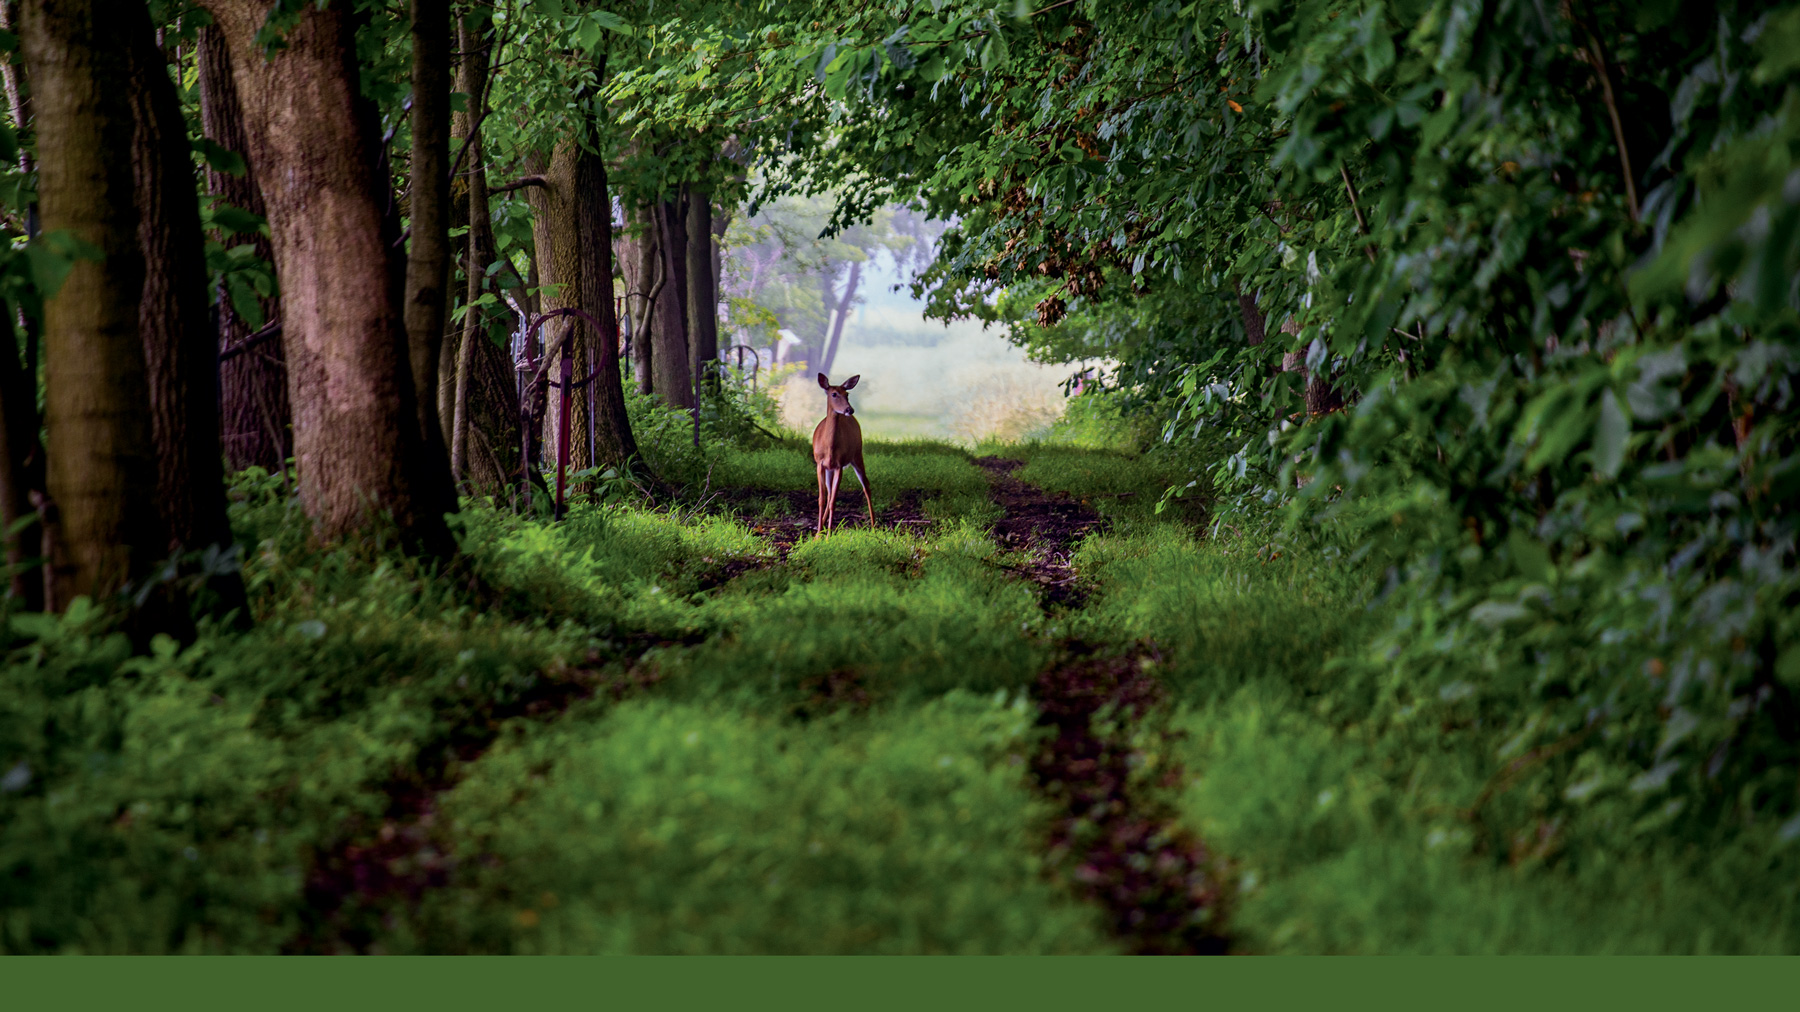 A deer pauses to scan its surroundings one recent morning in Trelease Woods. (Photo by Jesse Wallace.)